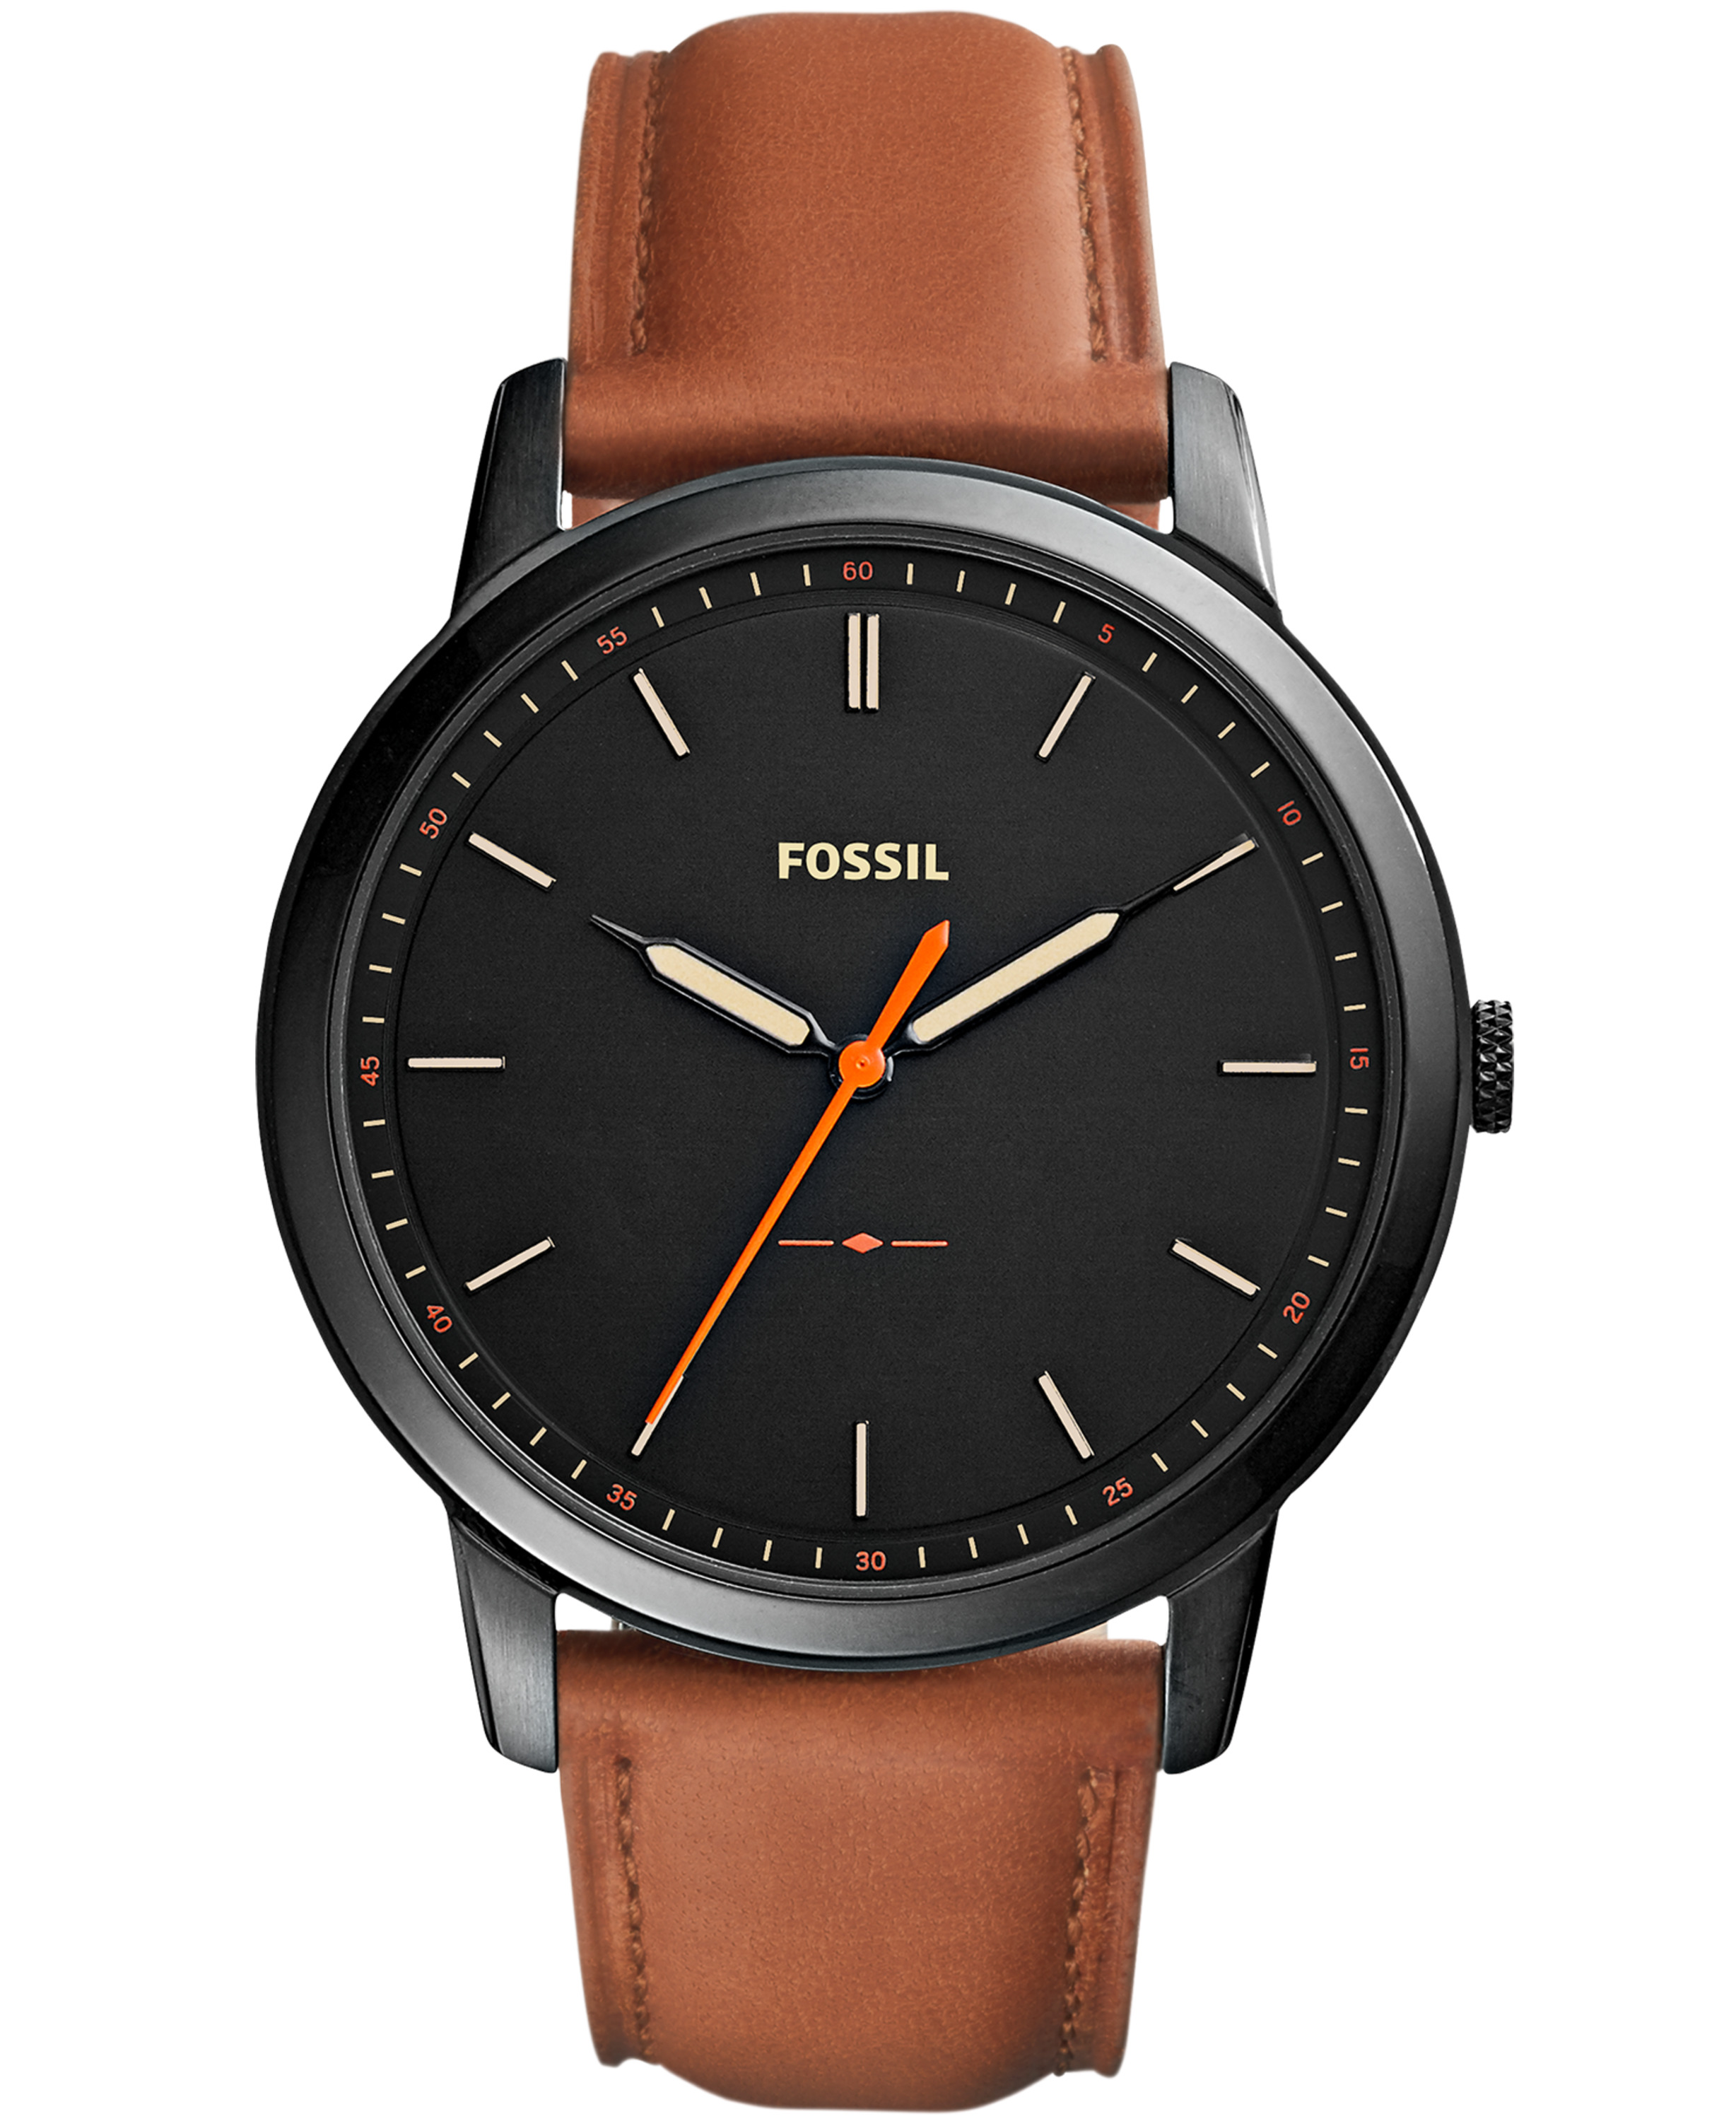 Image of Fossil Watch